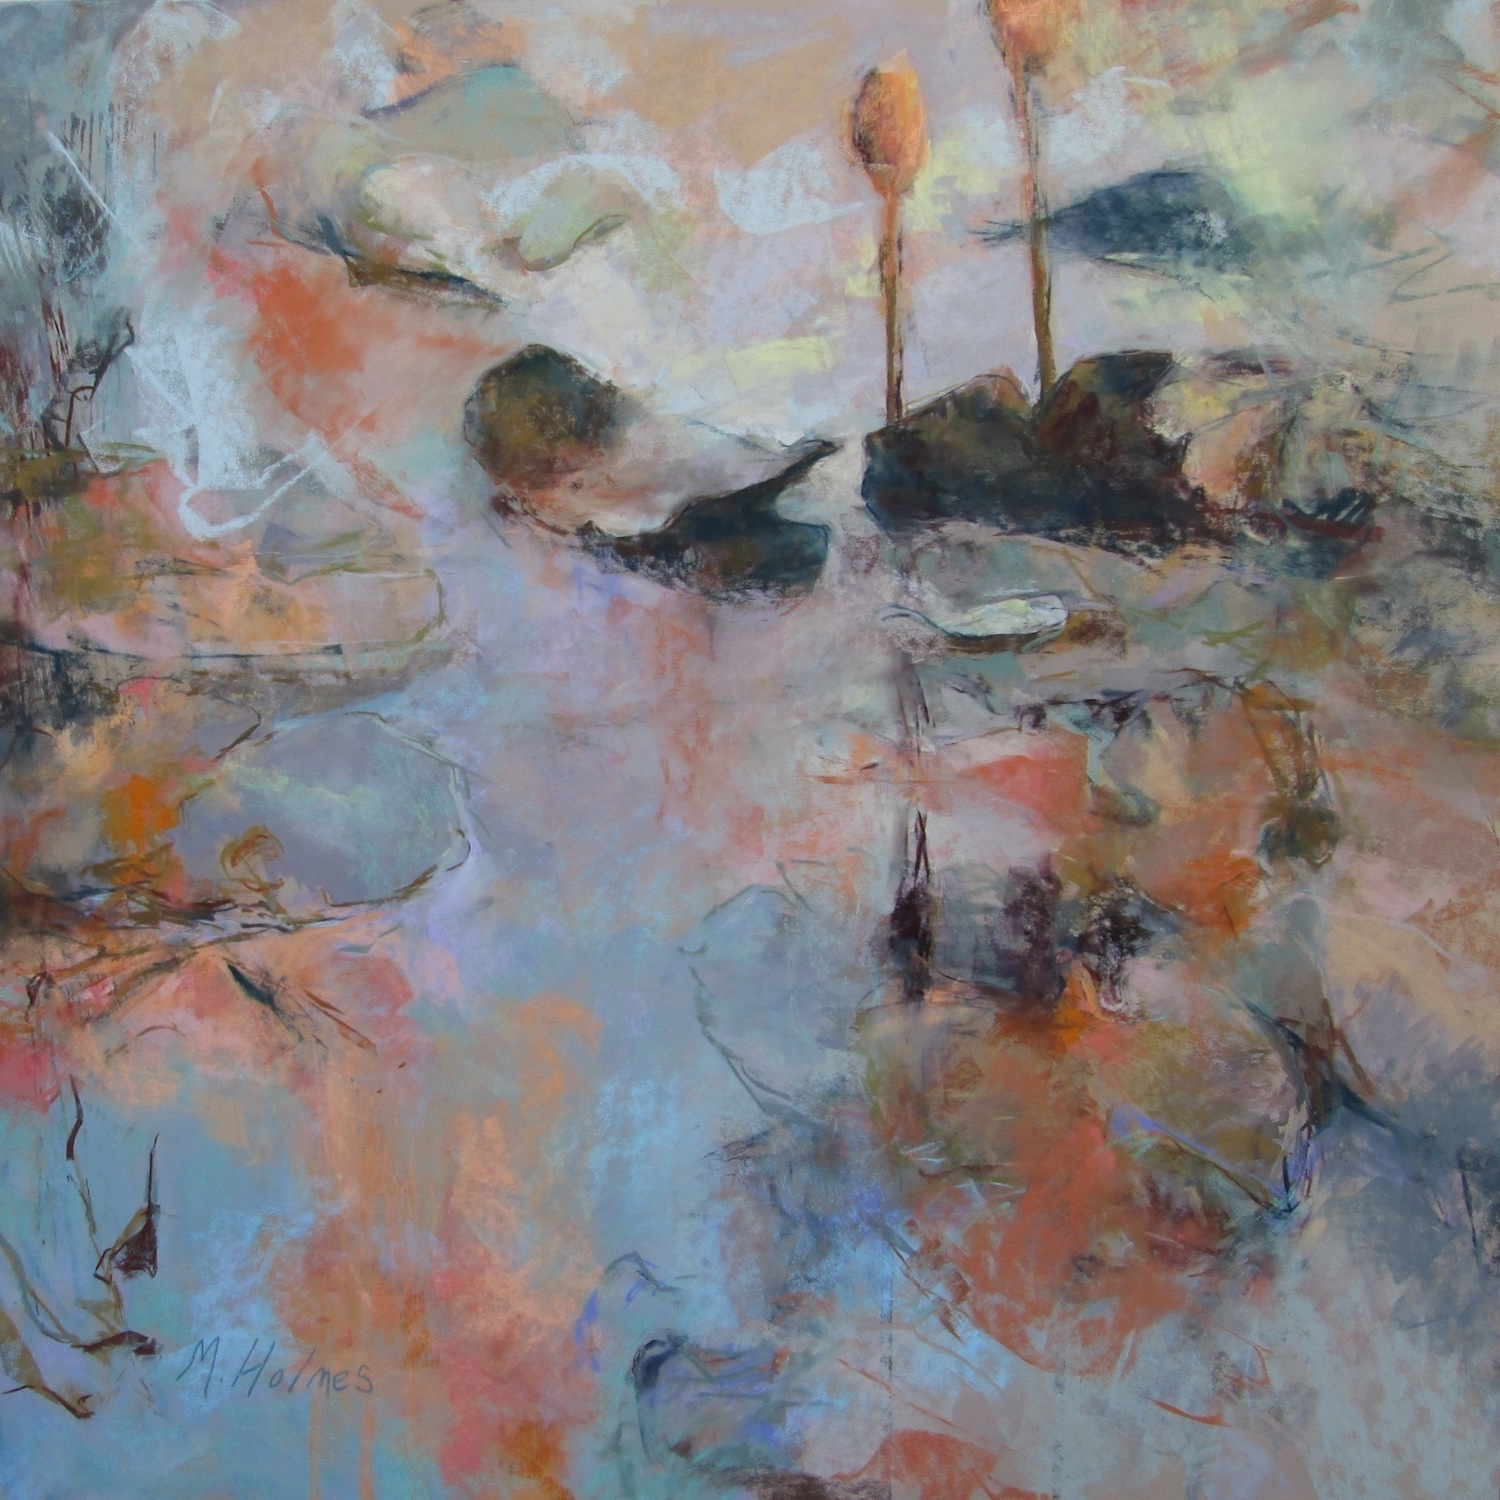 """Marcia Holmes, """"Floating at Dusk,"""" 2016, pastel, 26 x 26 in. Sold."""